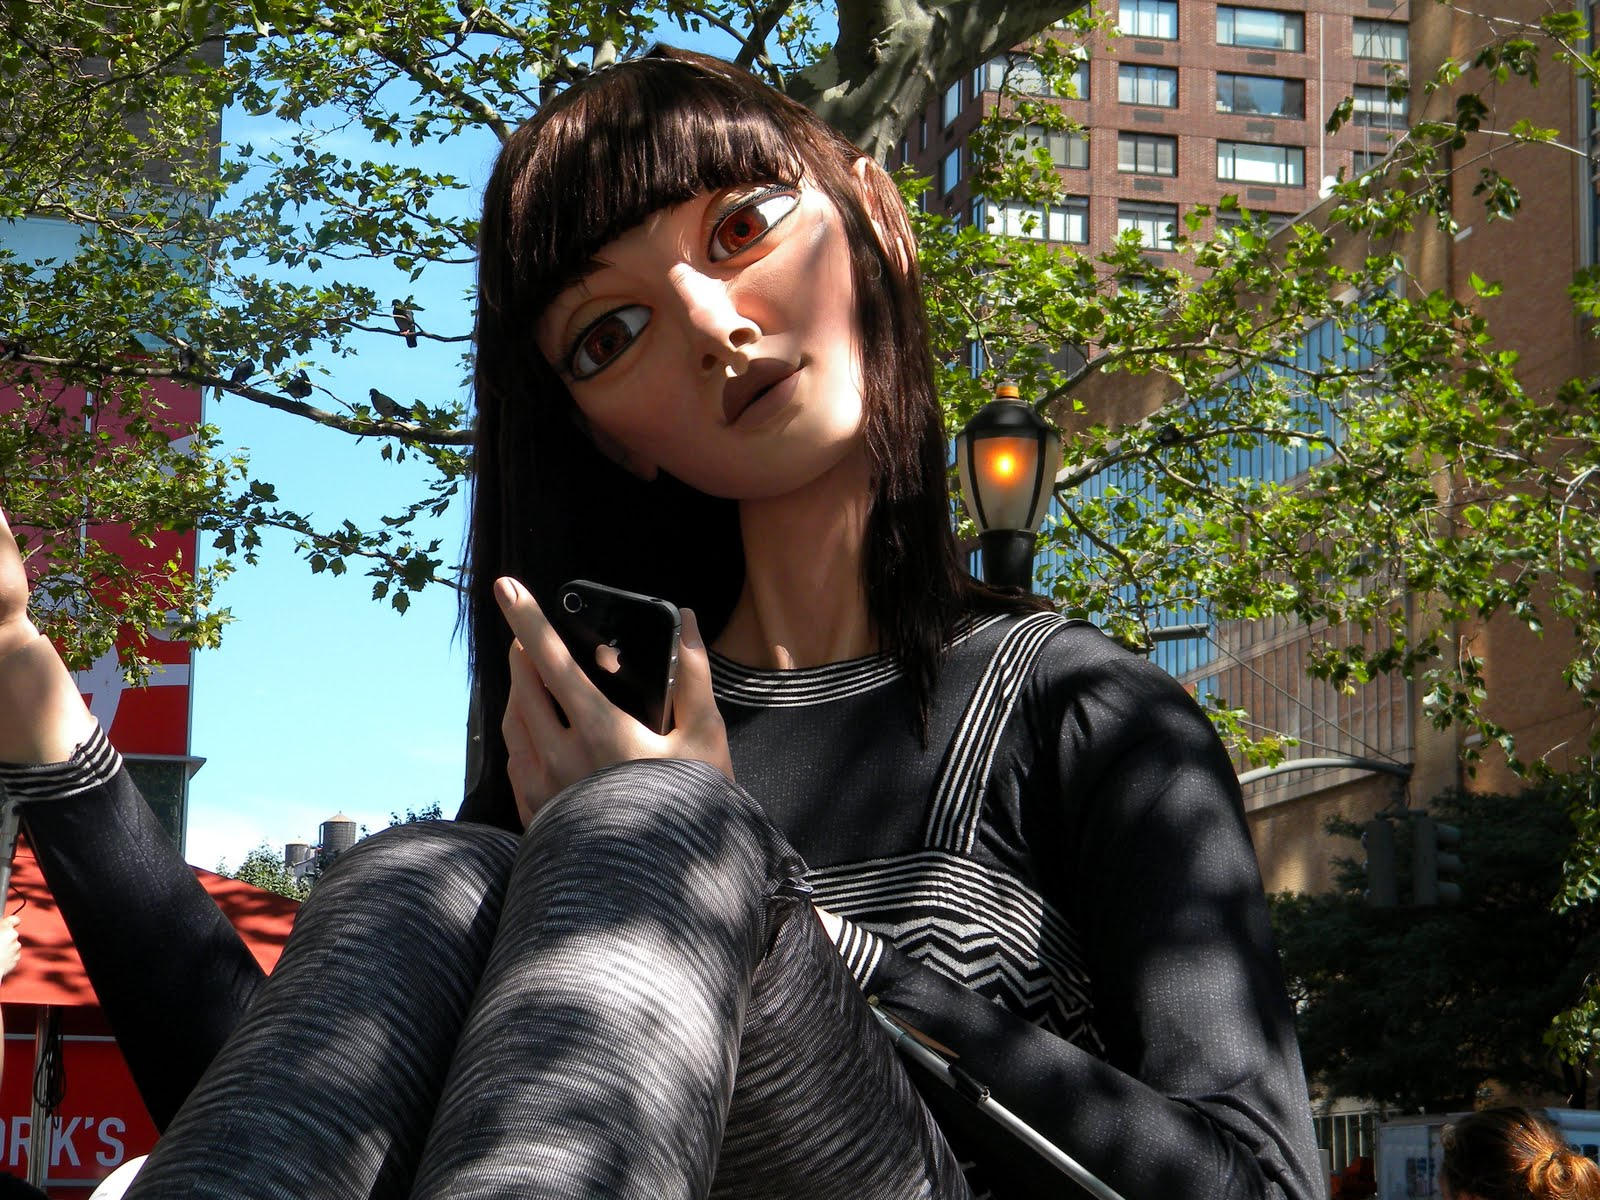 Marina, the 25-foot tall Missoni-clad doll who likes to blogger and tweet